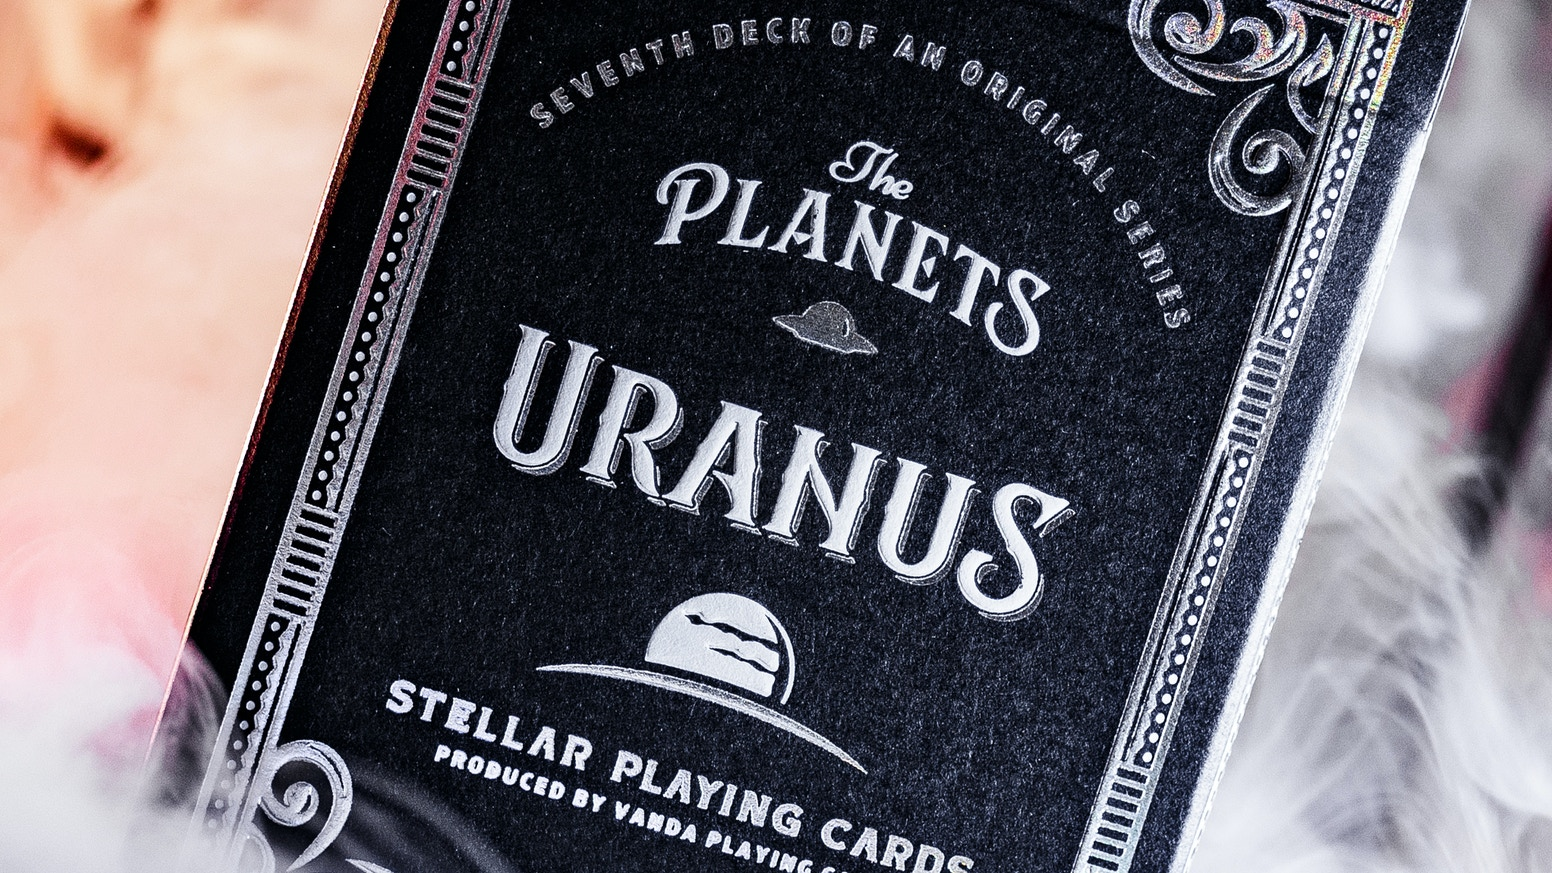 The Planets: Uranus Playing Cards [7 of 8] is the top crowdfunding project launched today. The Planets: Uranus Playing Cards [7 of 8] raised over $23027 from 561 backers. Other top projects include My , DIDDLYSH!T - The Game, The Worthy Project - Help Us Rewrite Tomorrow!...